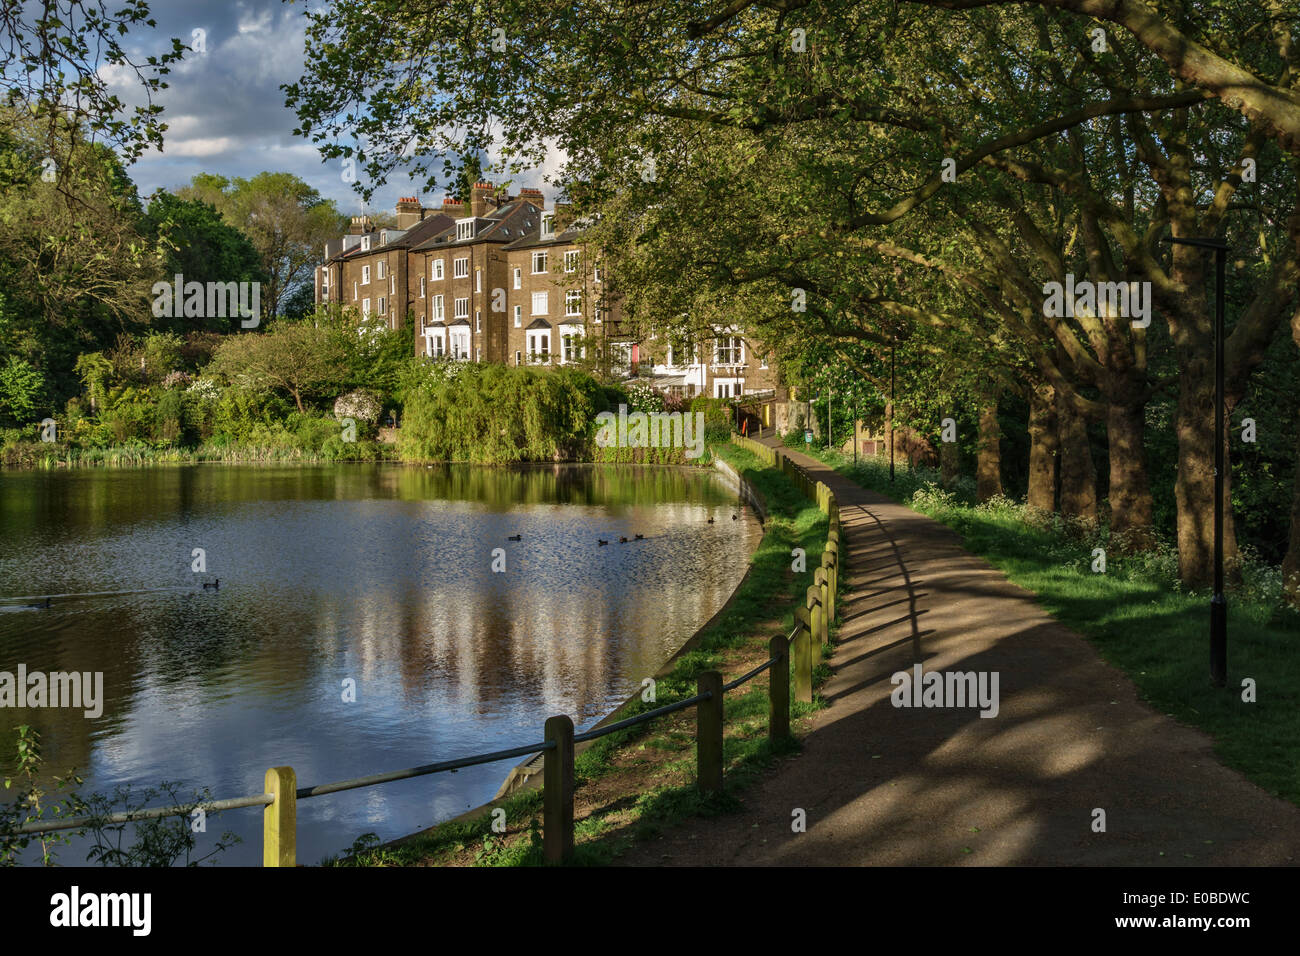 Hampstead No 2 Pond with the houses of South Hill Park Gardens, Hampstead Heath, London, UK - Stock Image